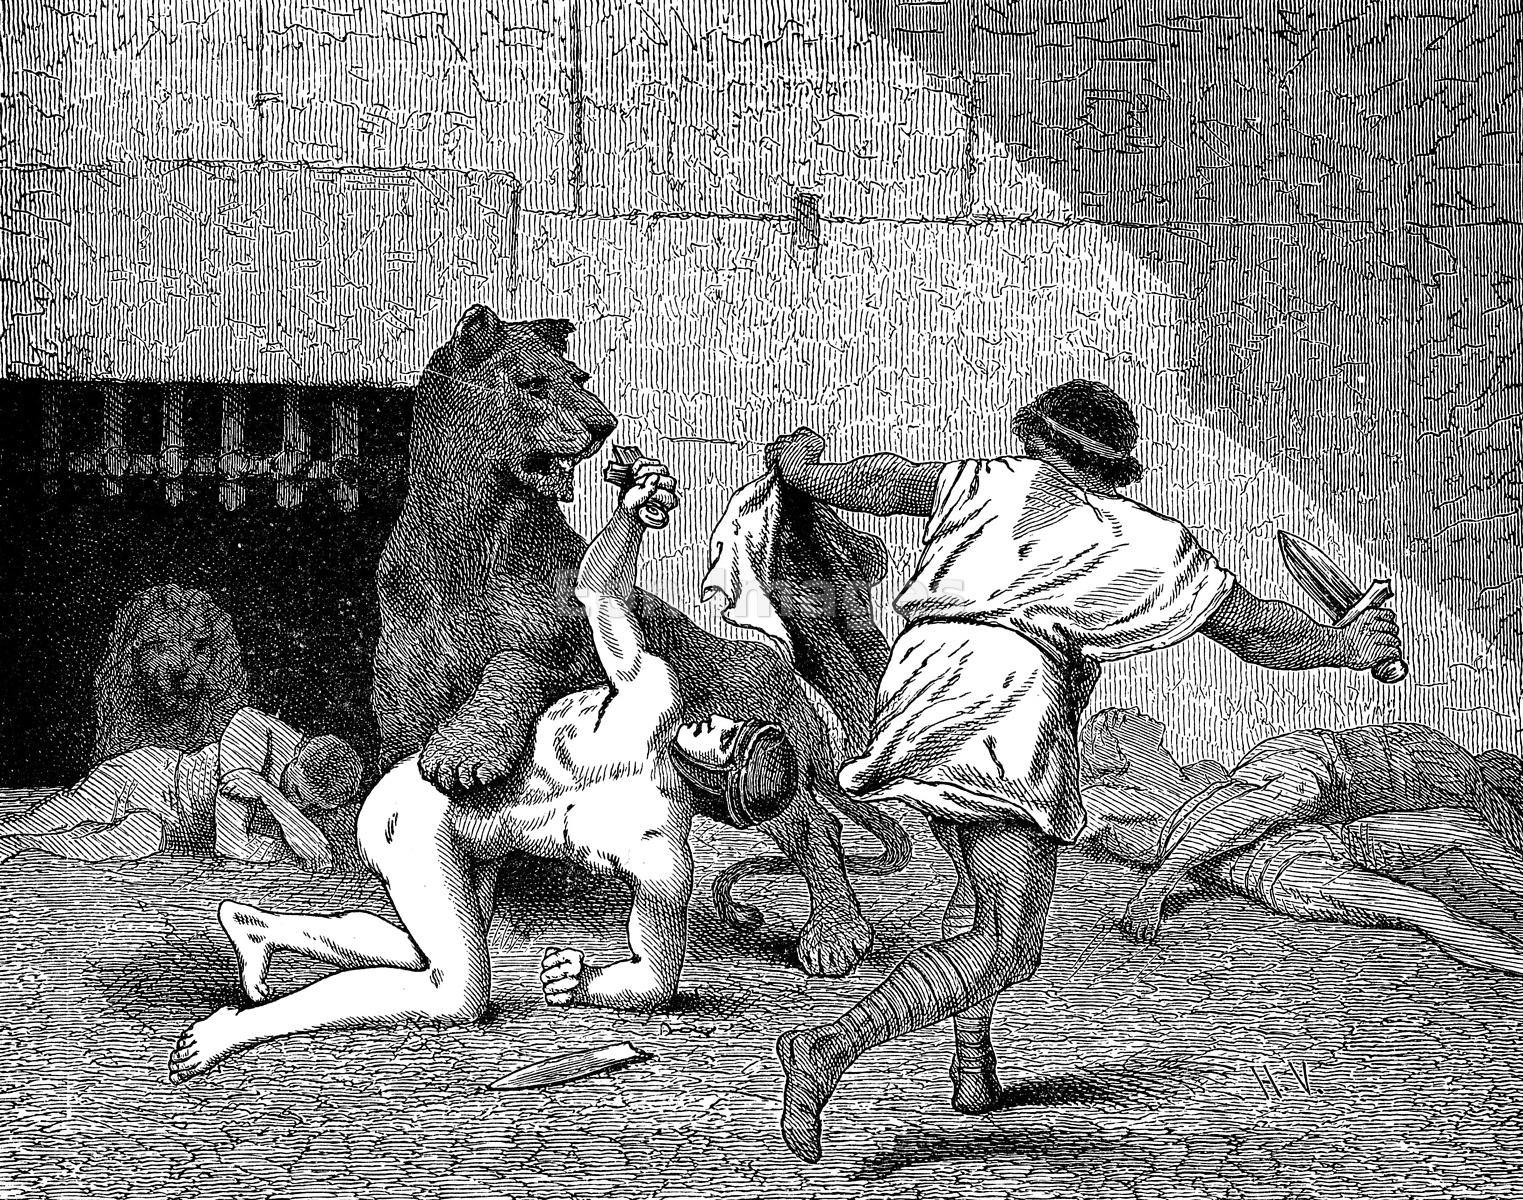 Roman gladiator fights lions